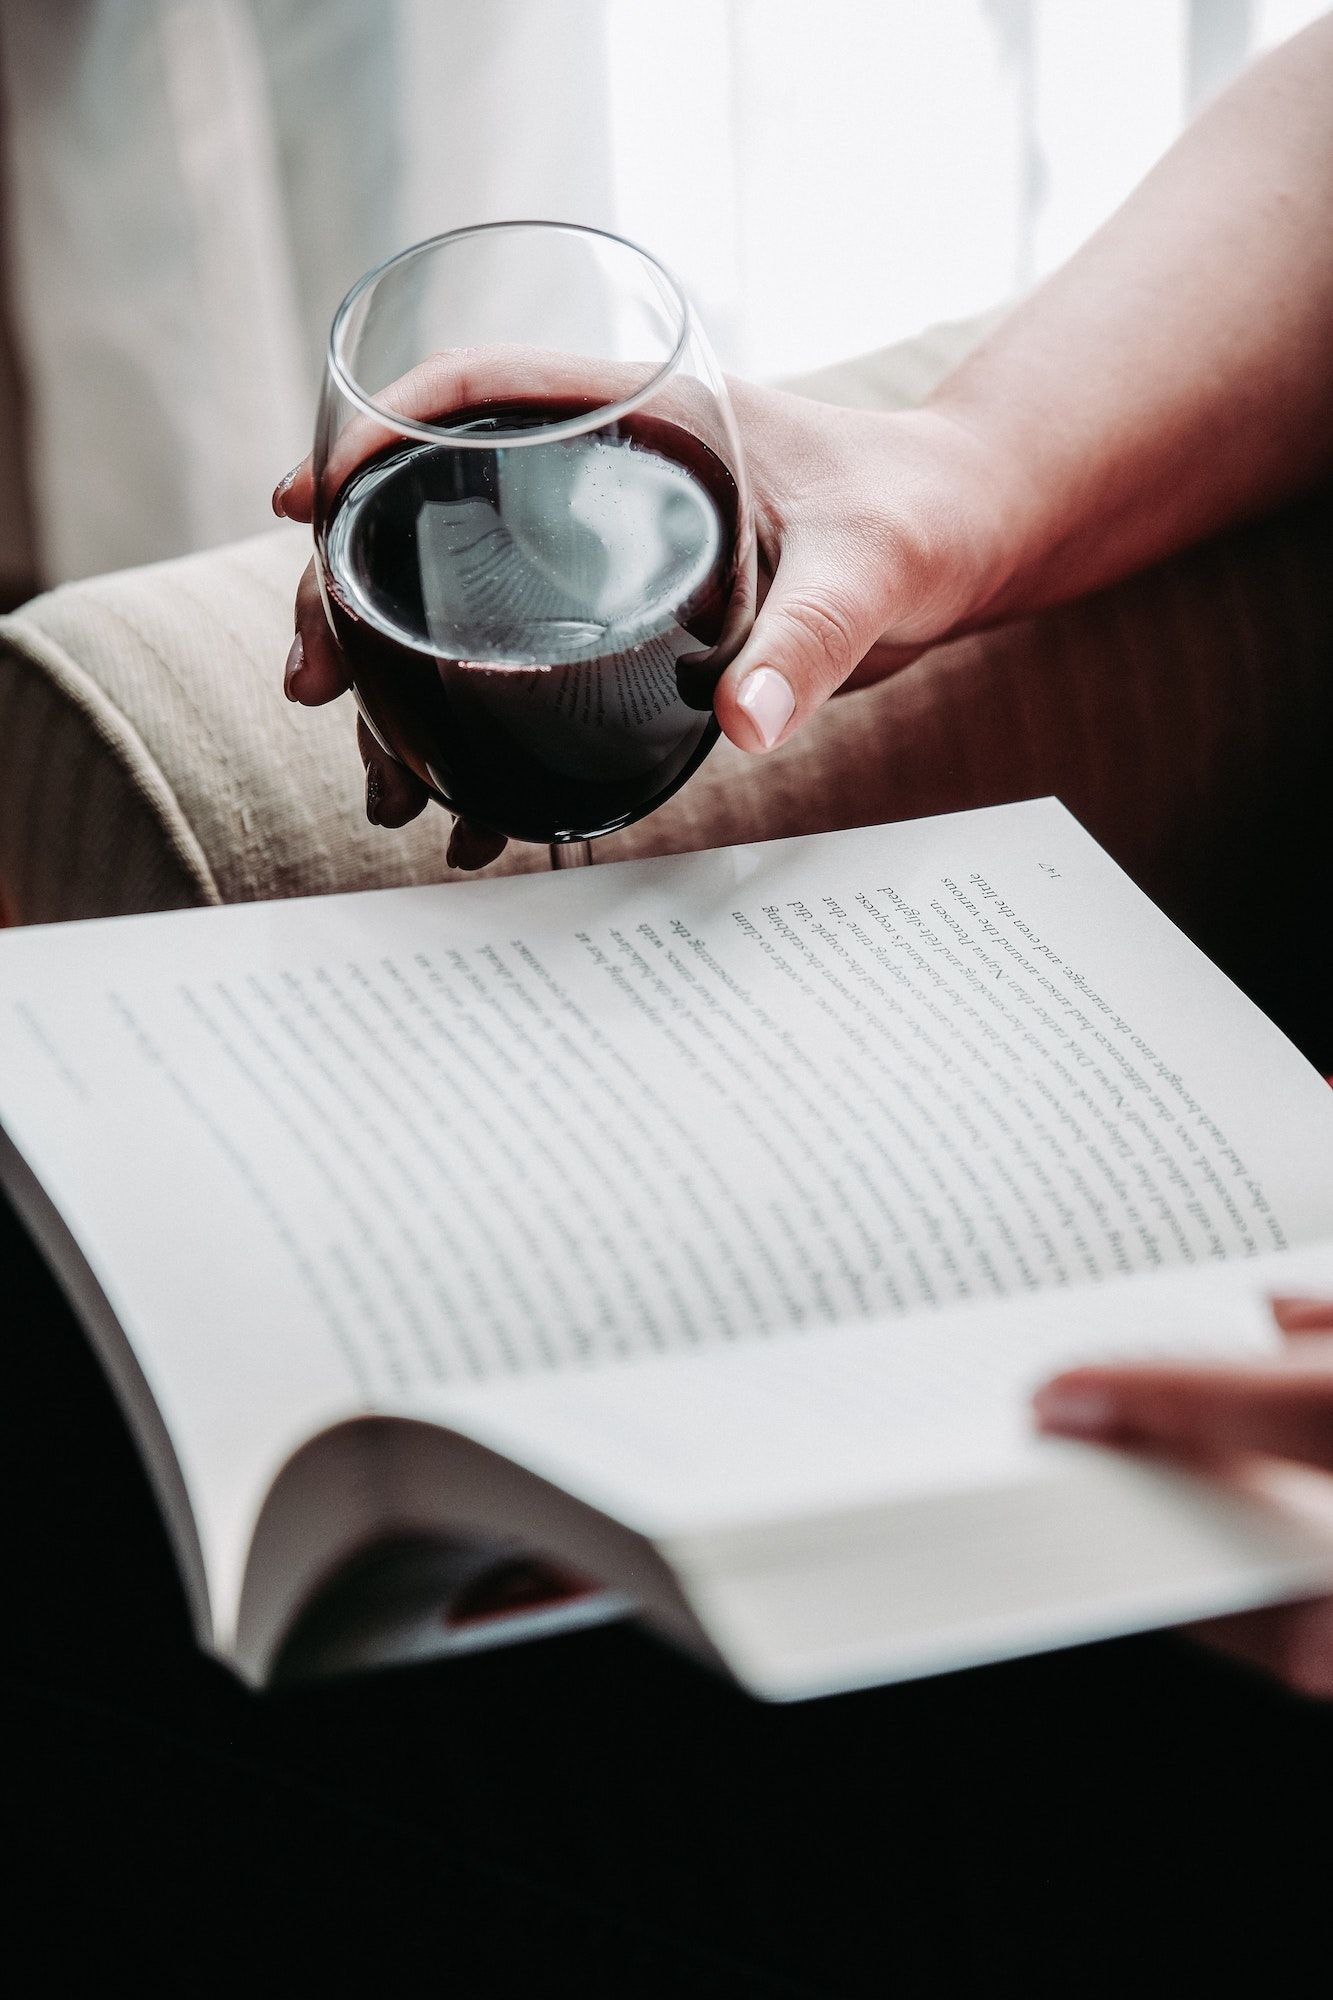 5 Books On Wine For The Budding Connoisseur